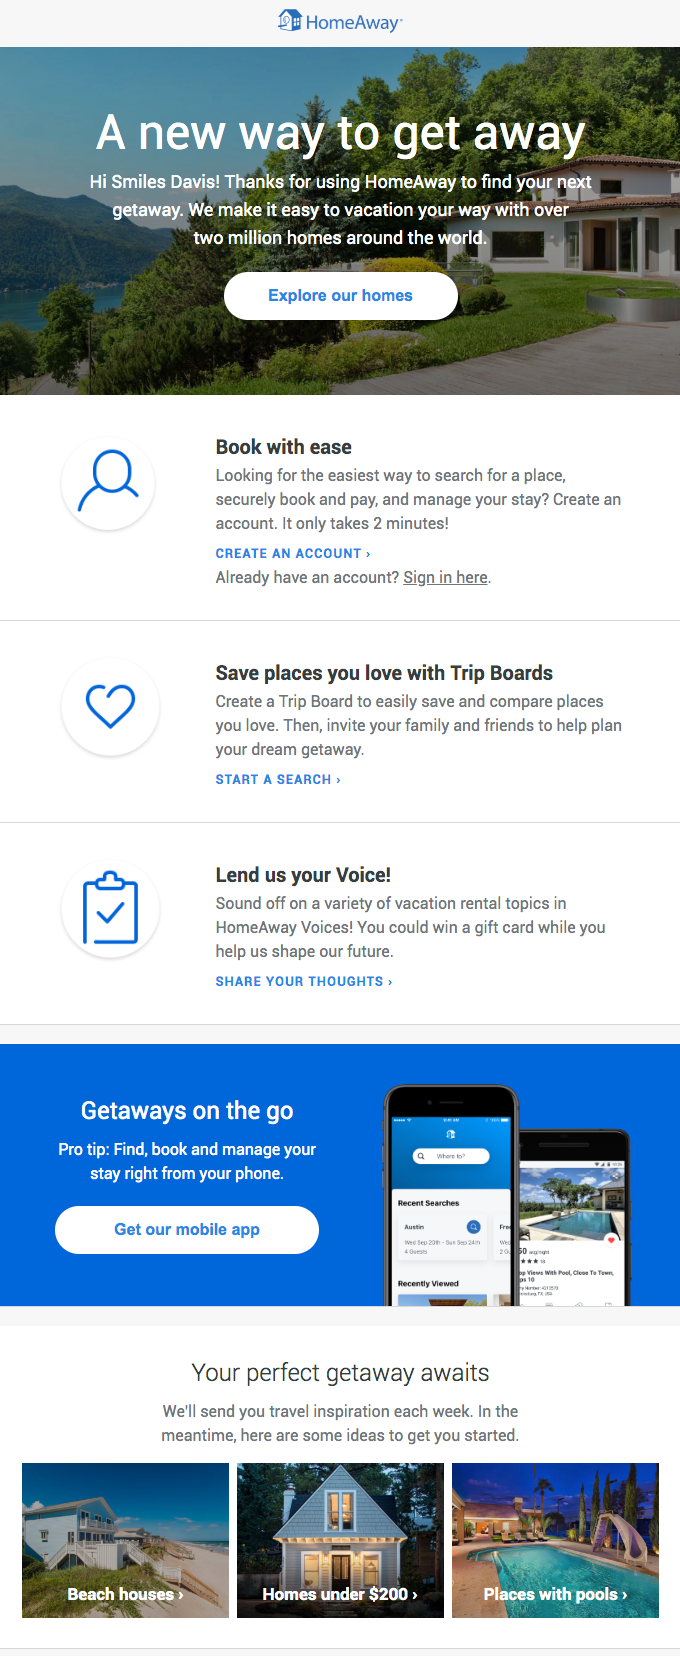 homeaway welcome onboarding email example